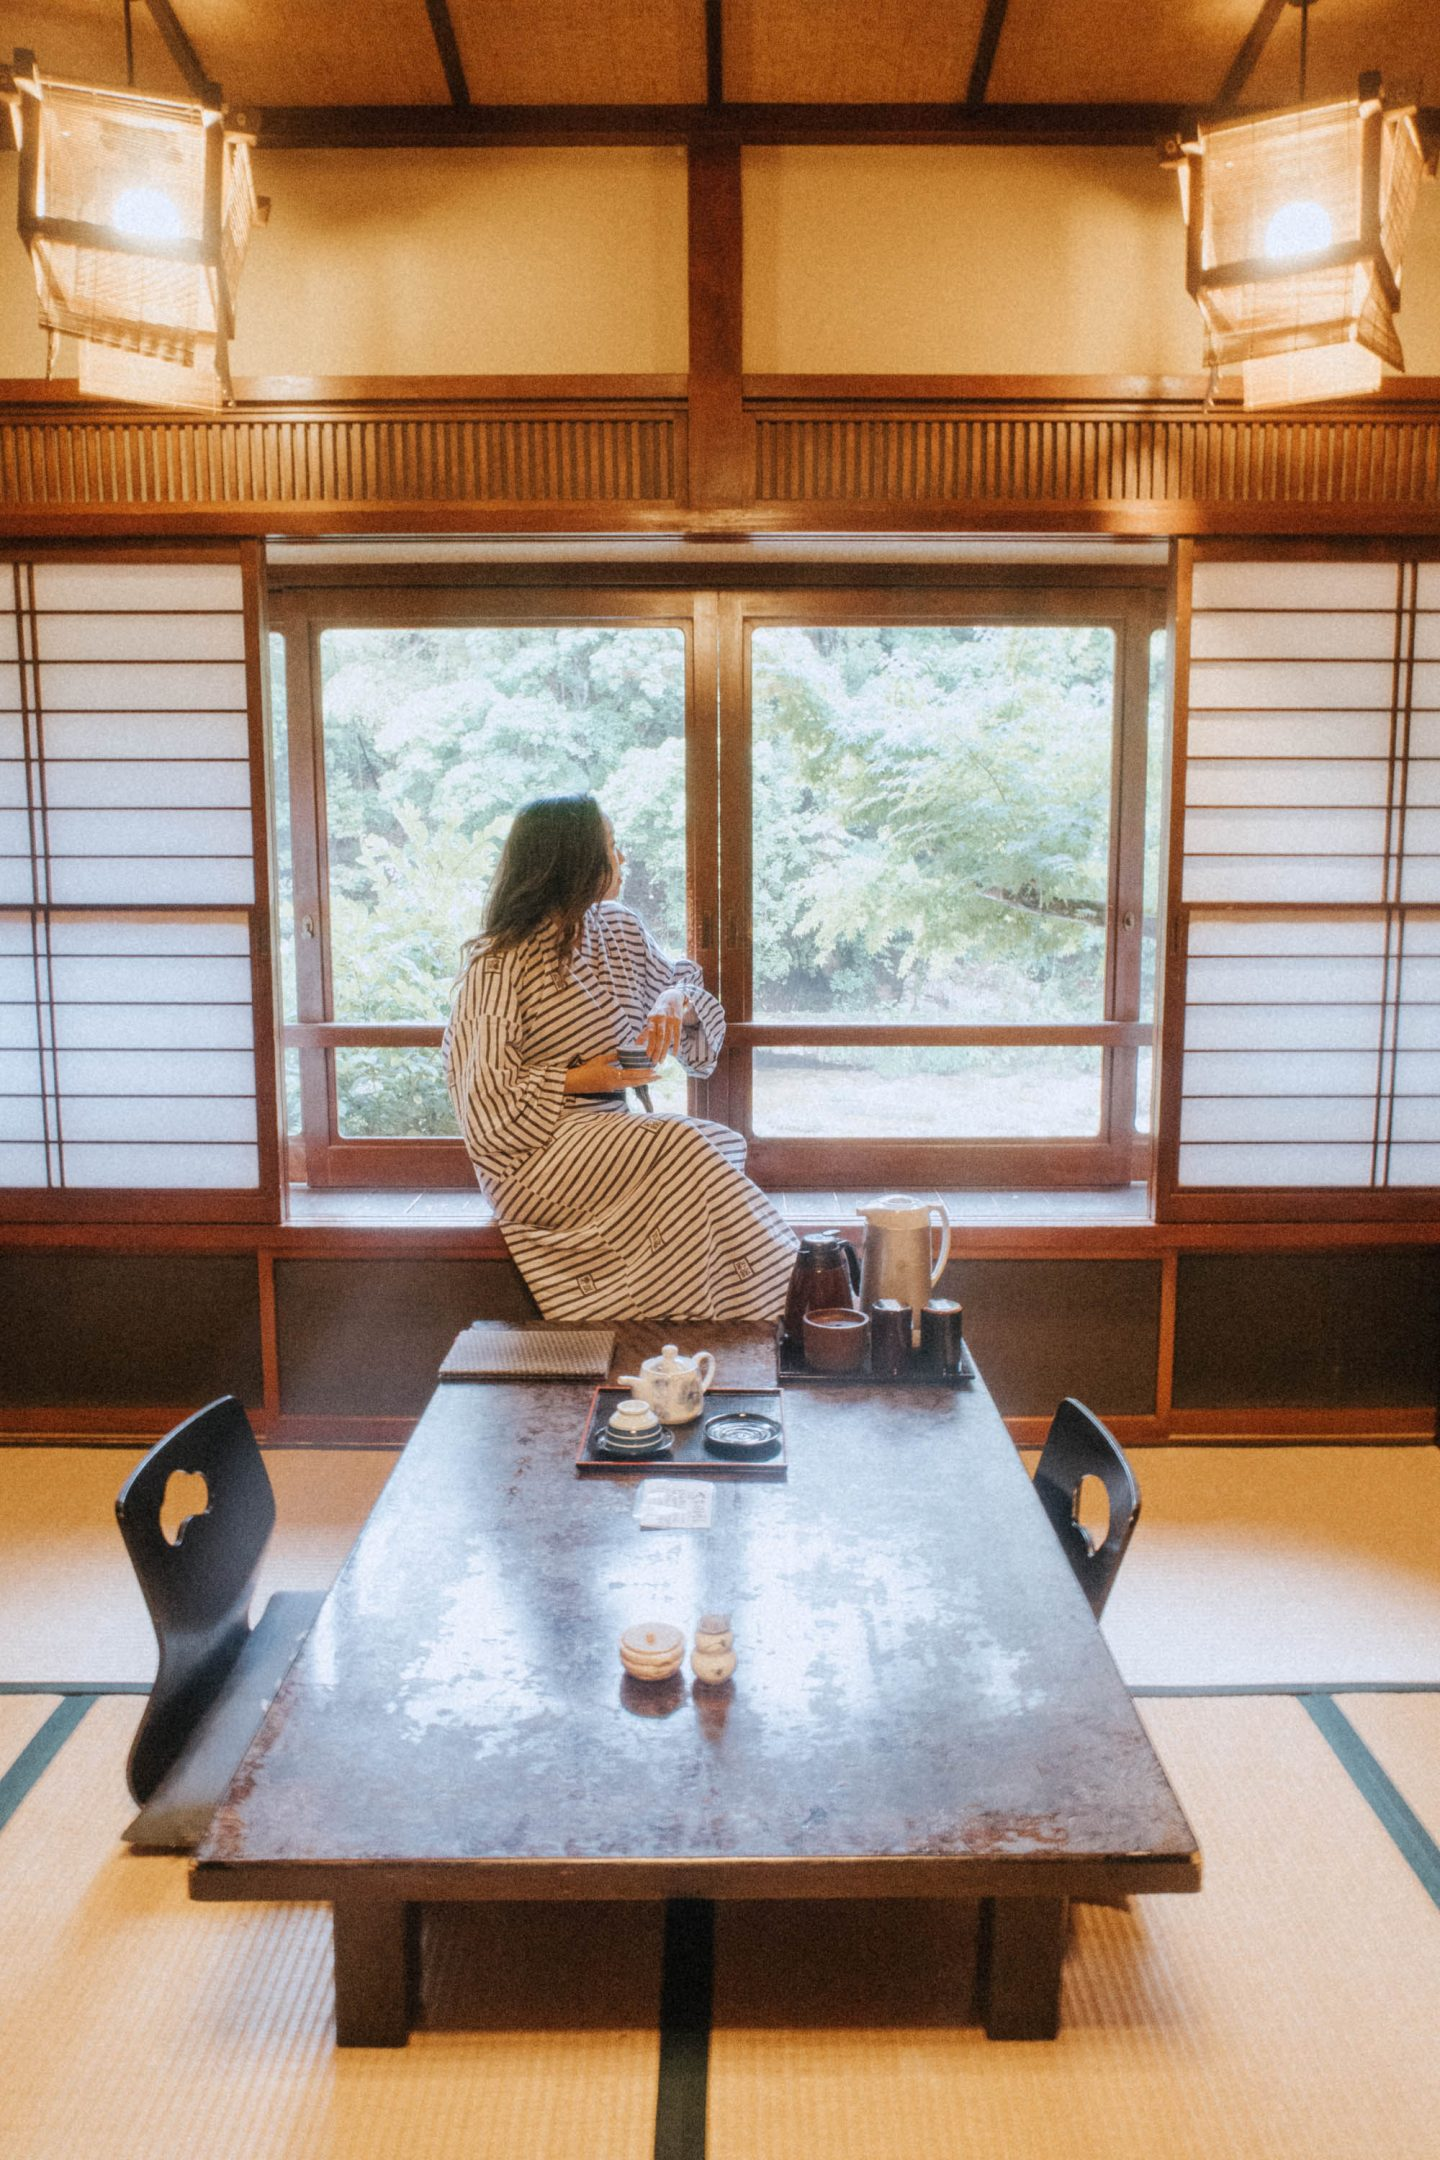 Relaxing in a traditional Aichi home in Central Japan